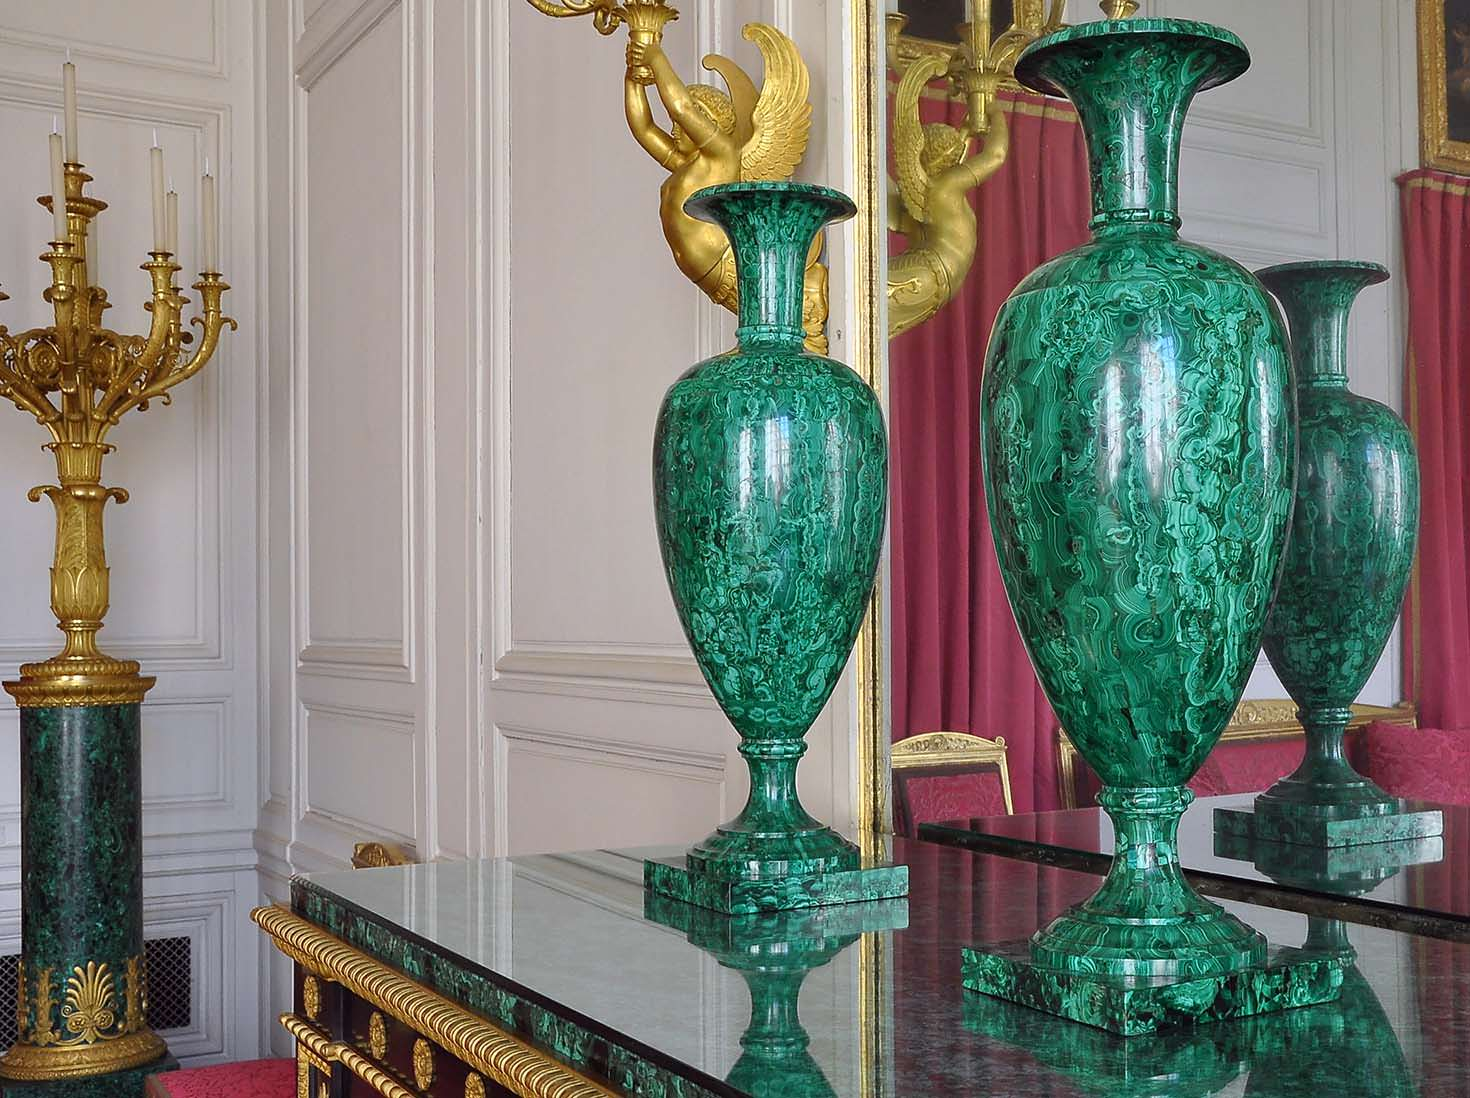 The Malachite room at the Grand Trianon in the Château de Versailles in Versailles, France